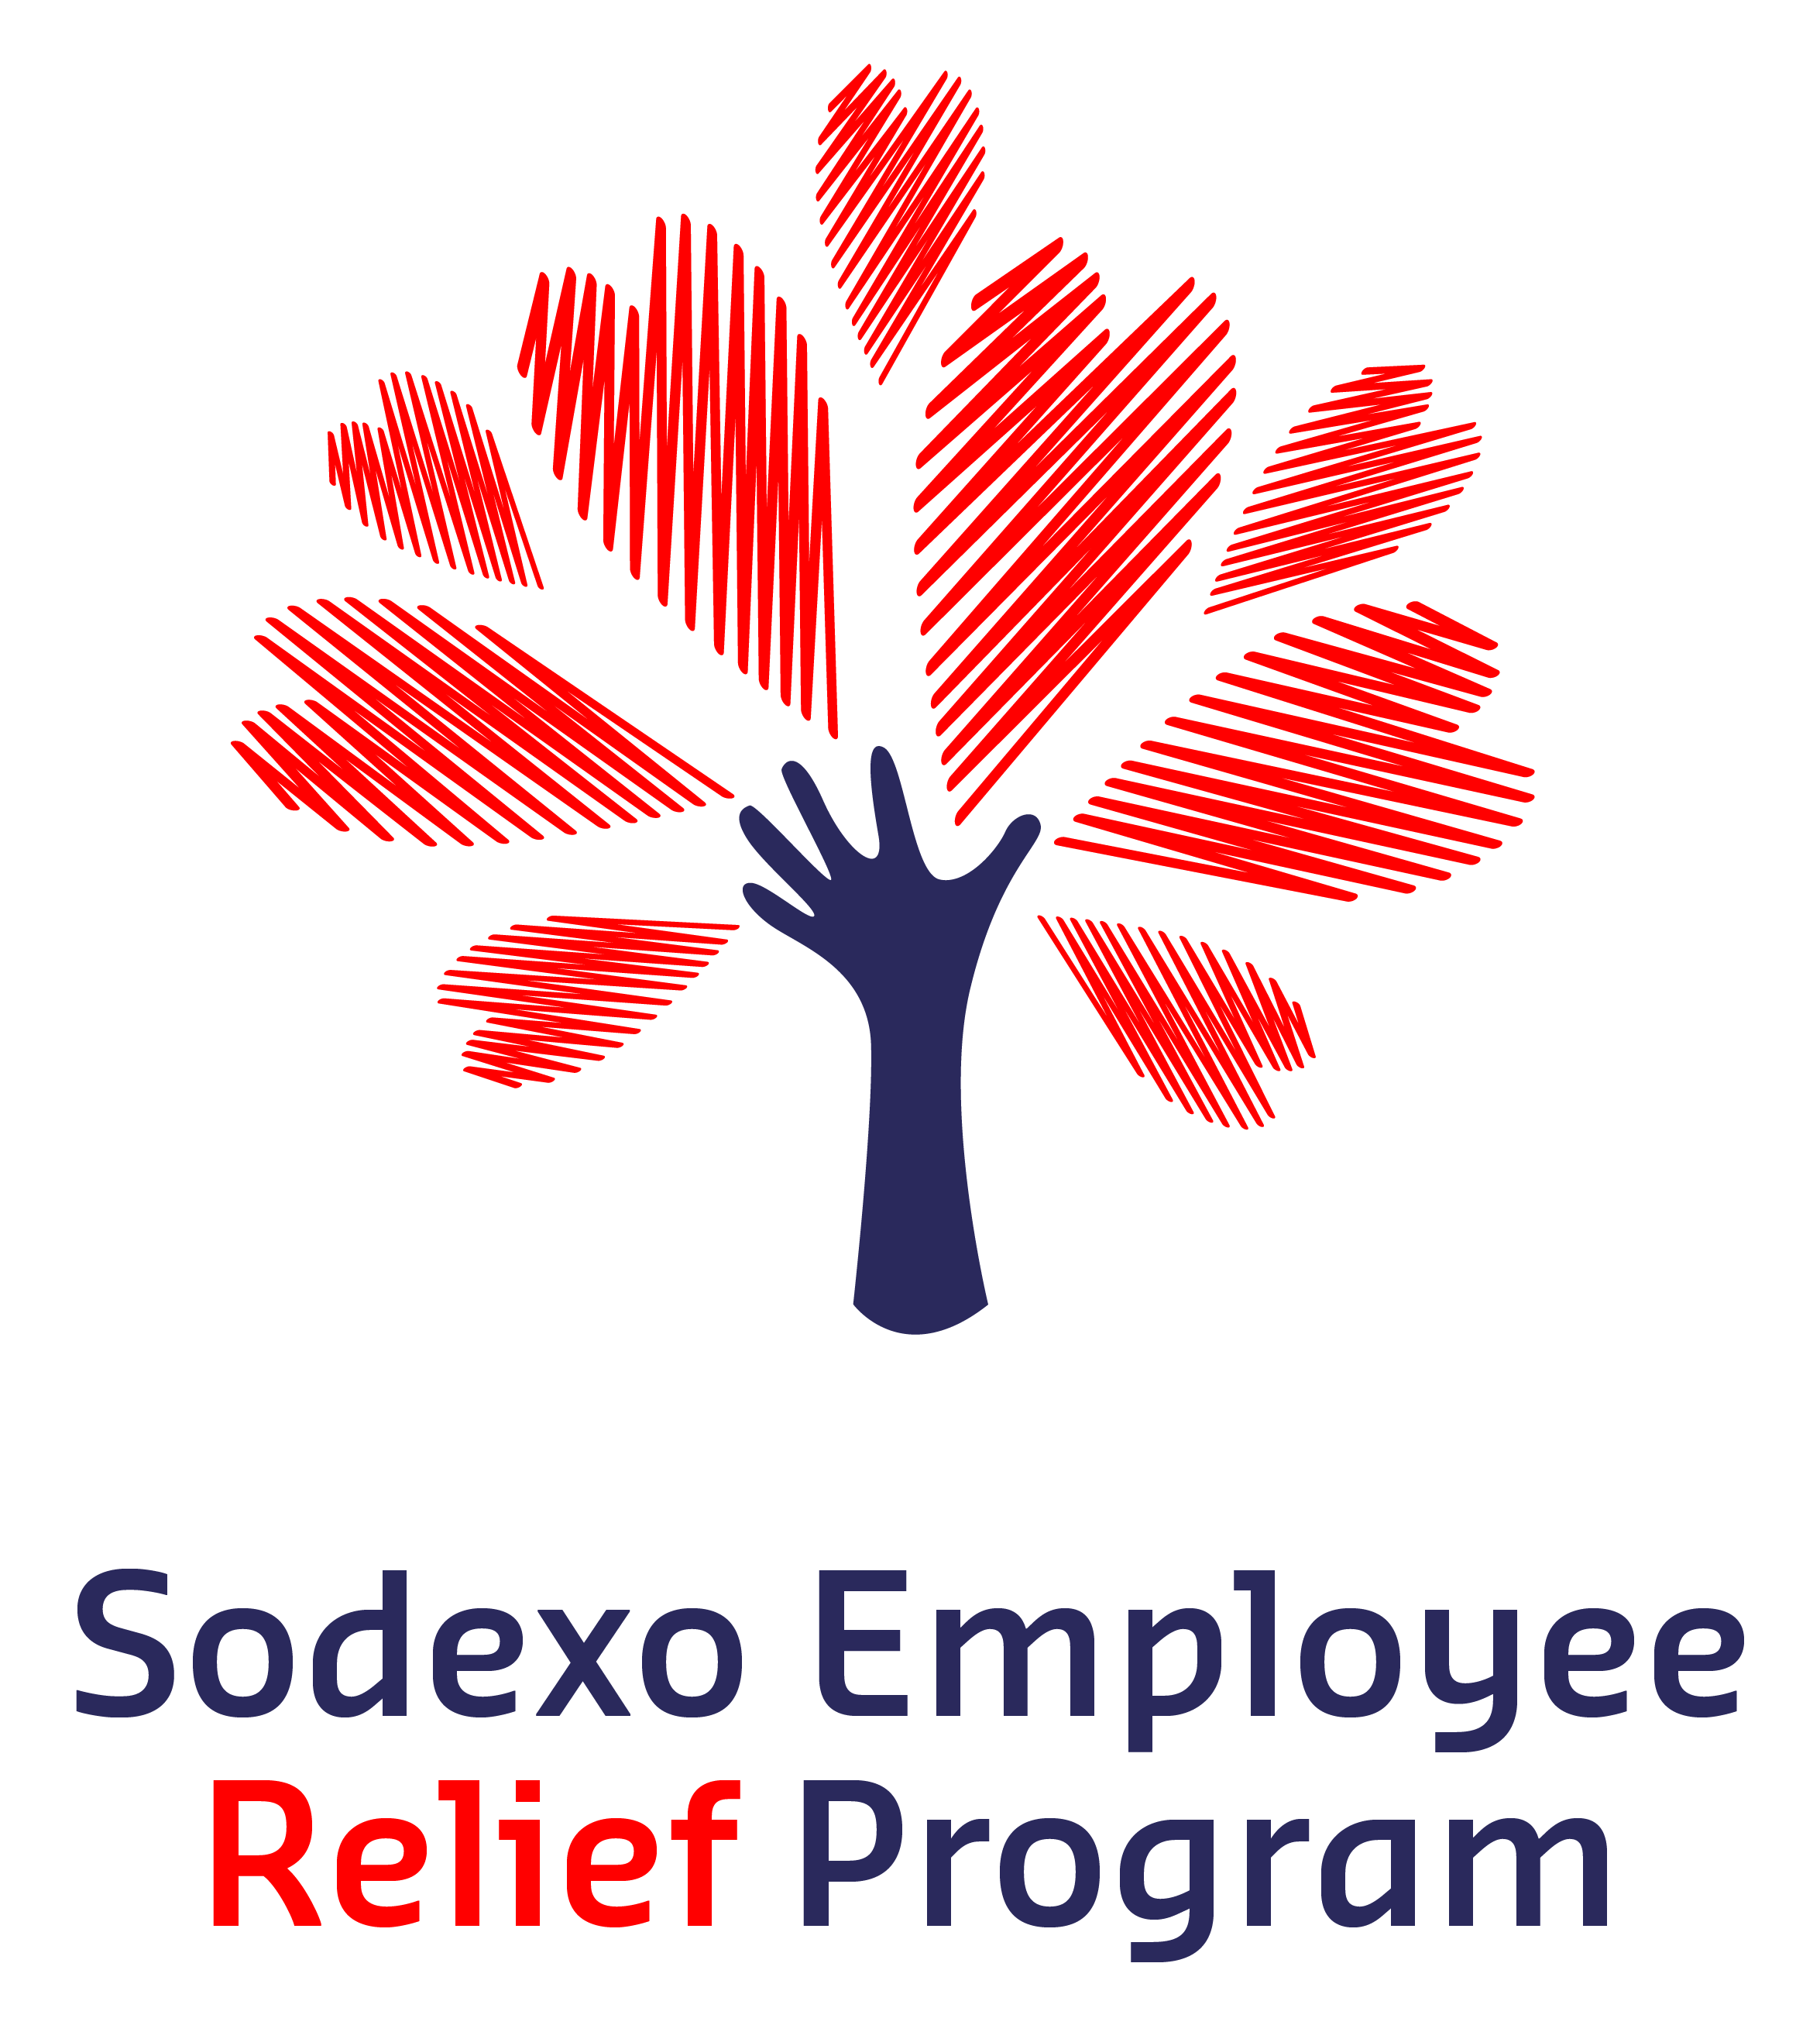 Sodexo Employee Relief Program logo